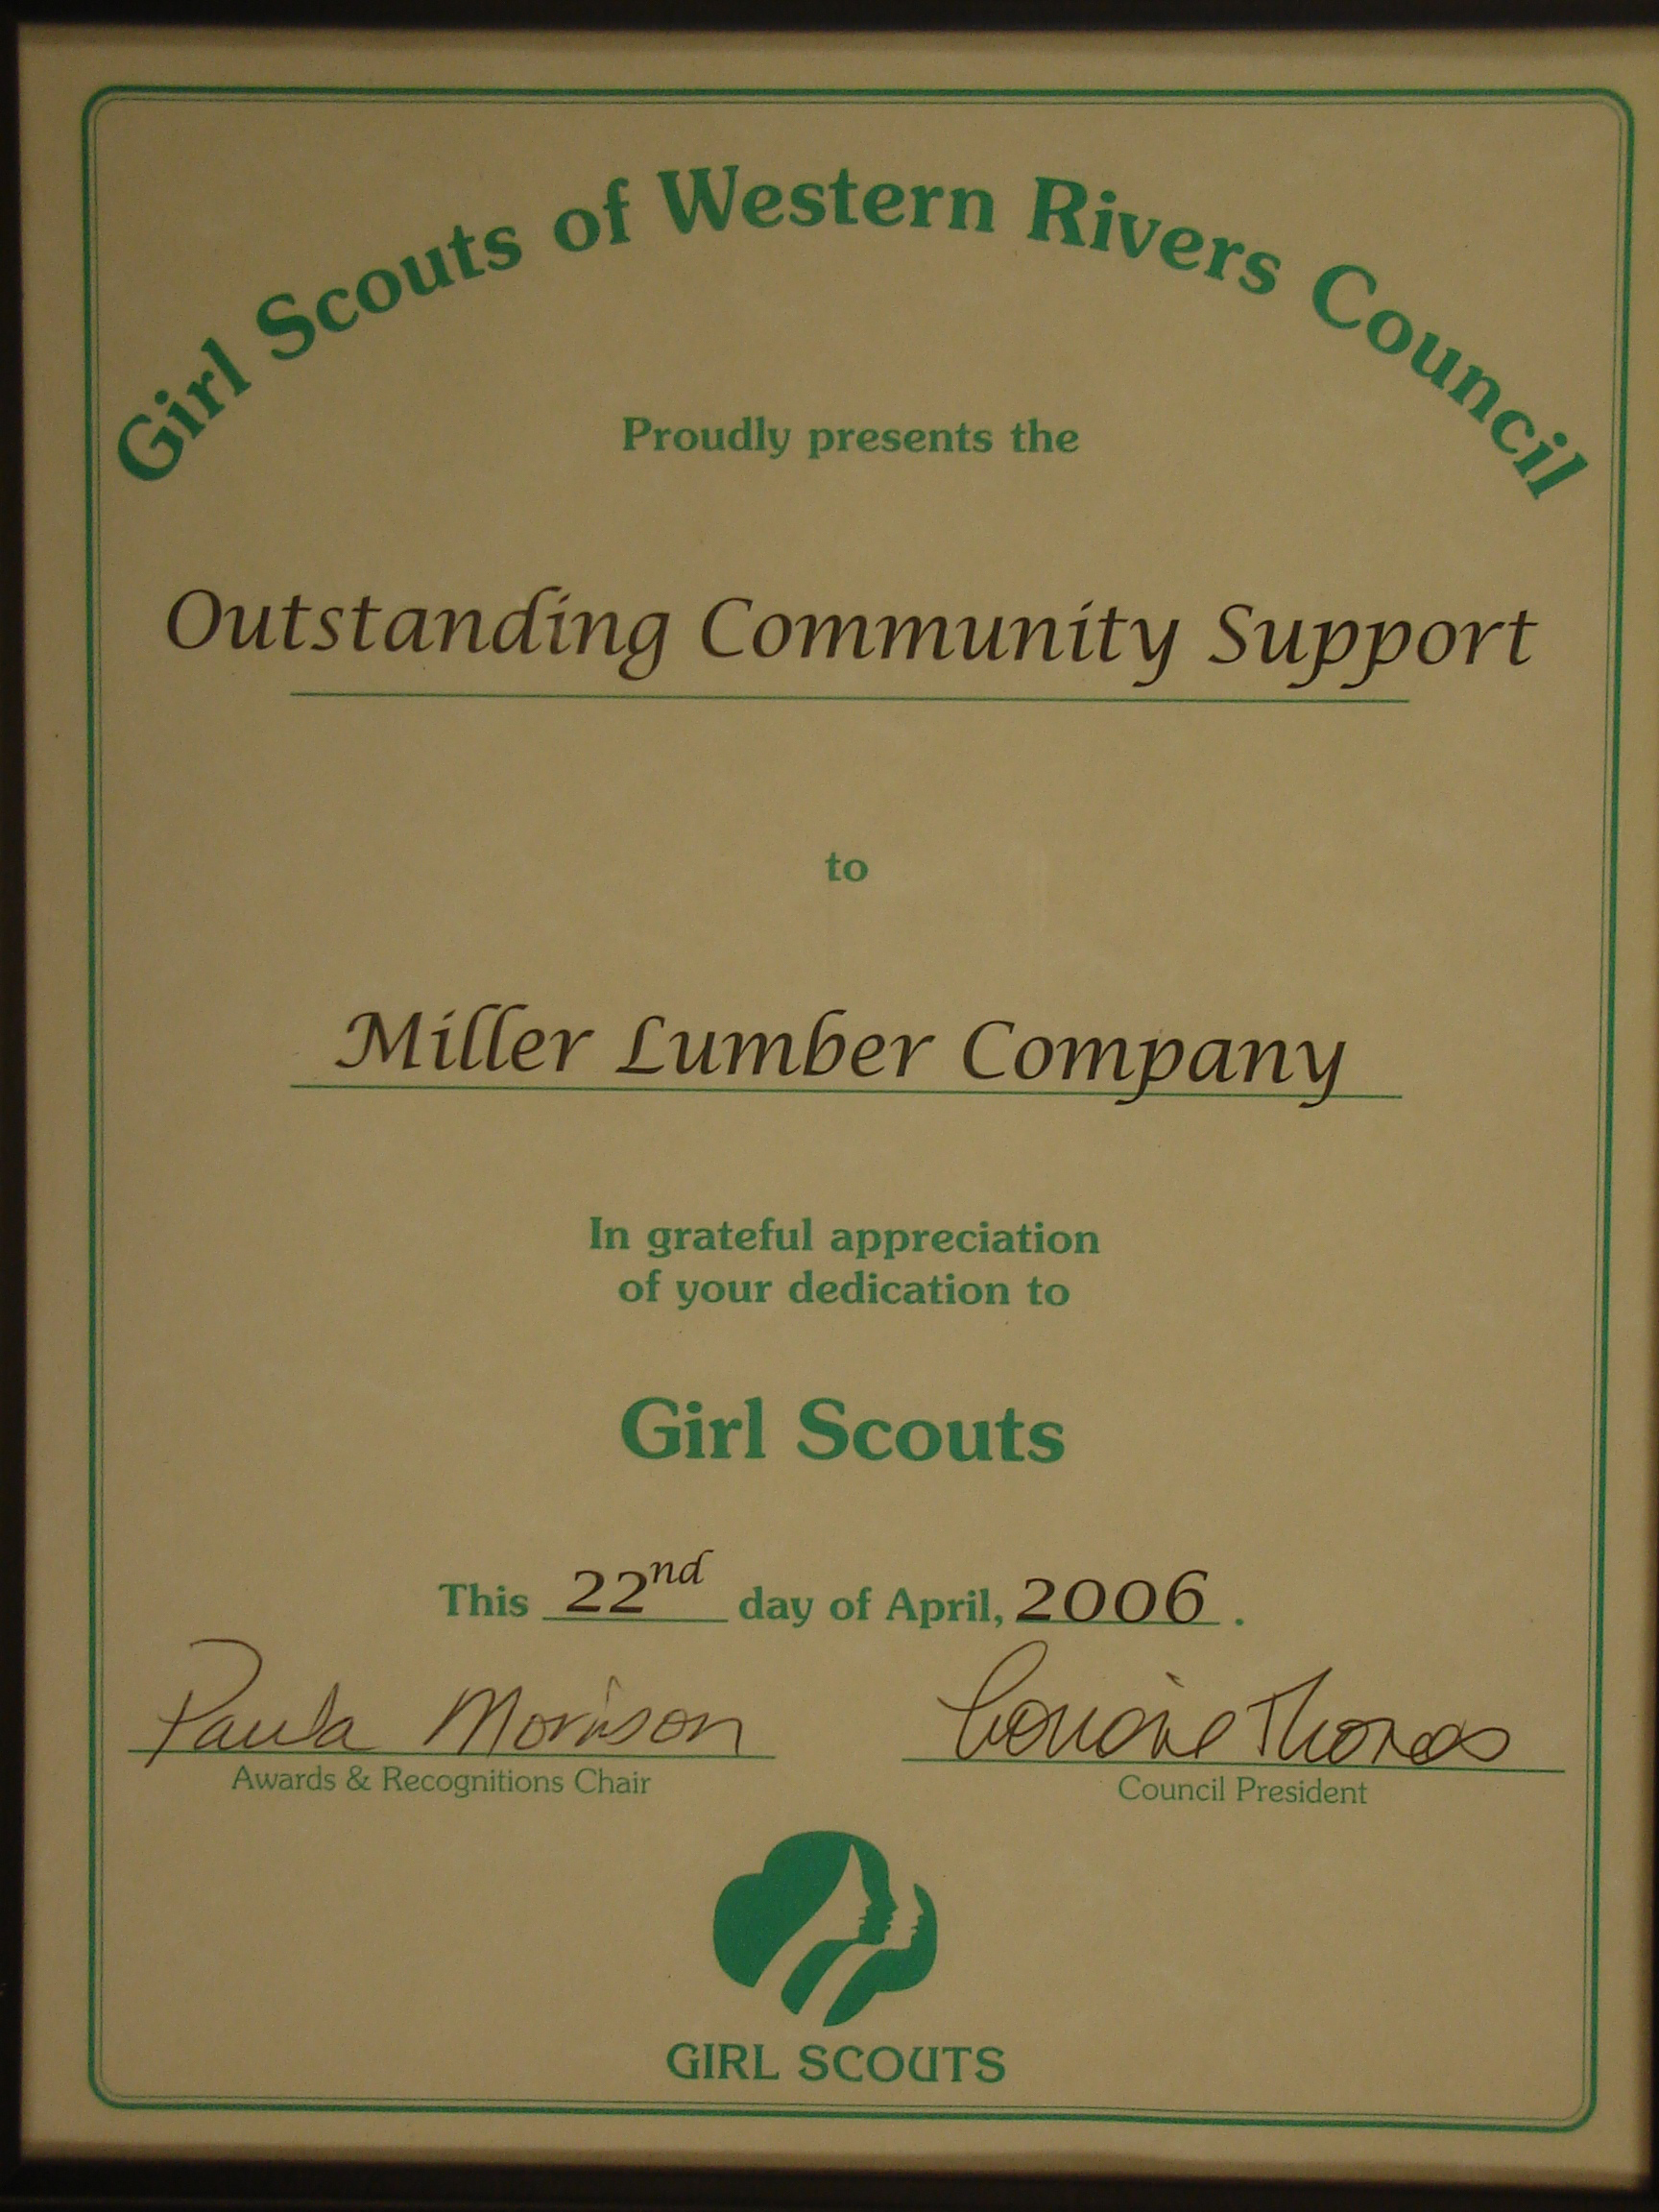 For many years, Miller has supported the Western Rivers Girl Scout Council.